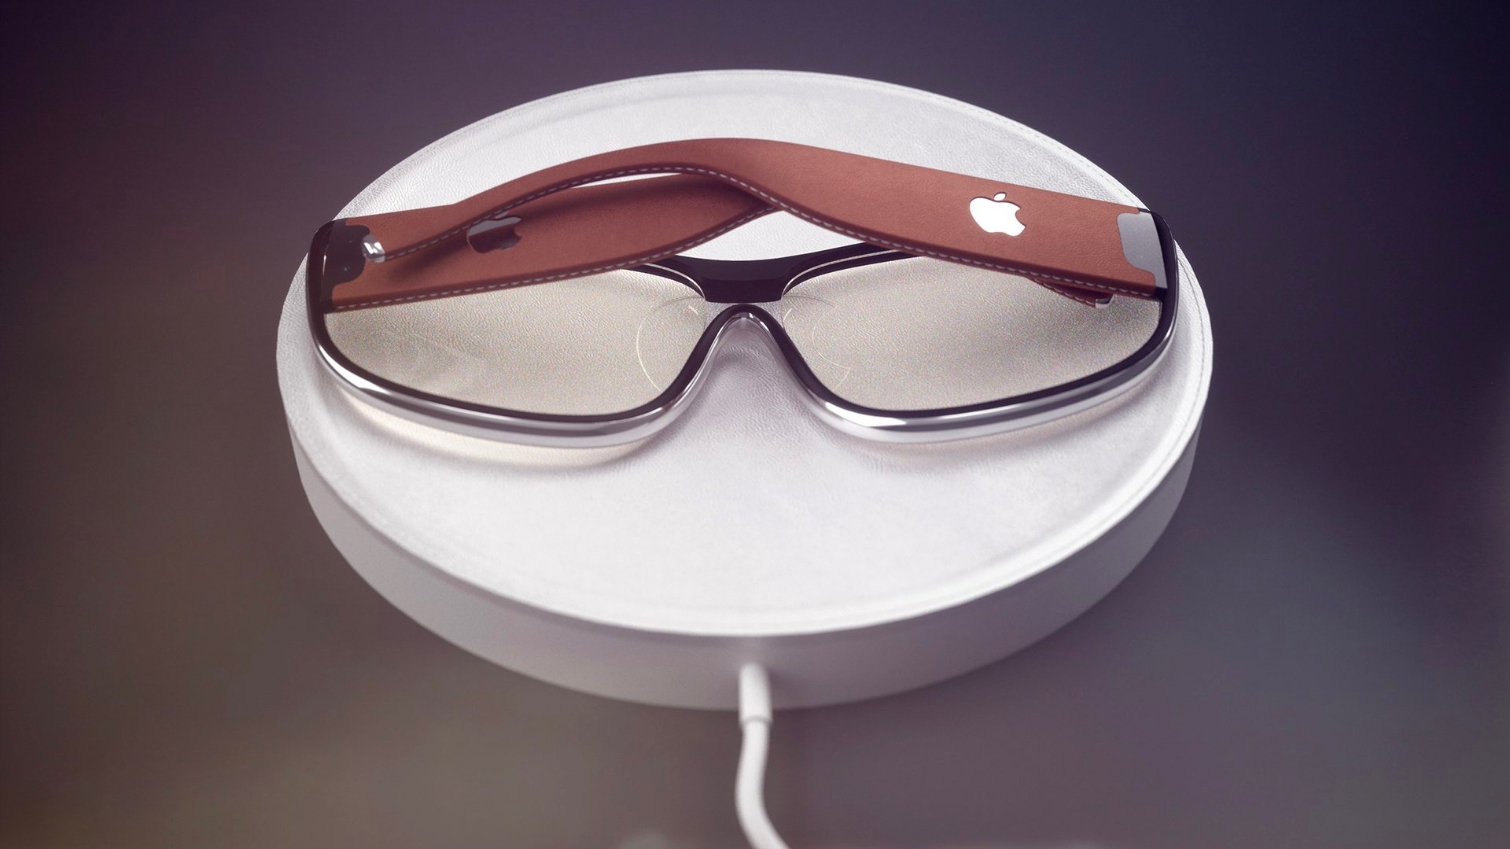 Apple has postponed the release of augmented reality glasses